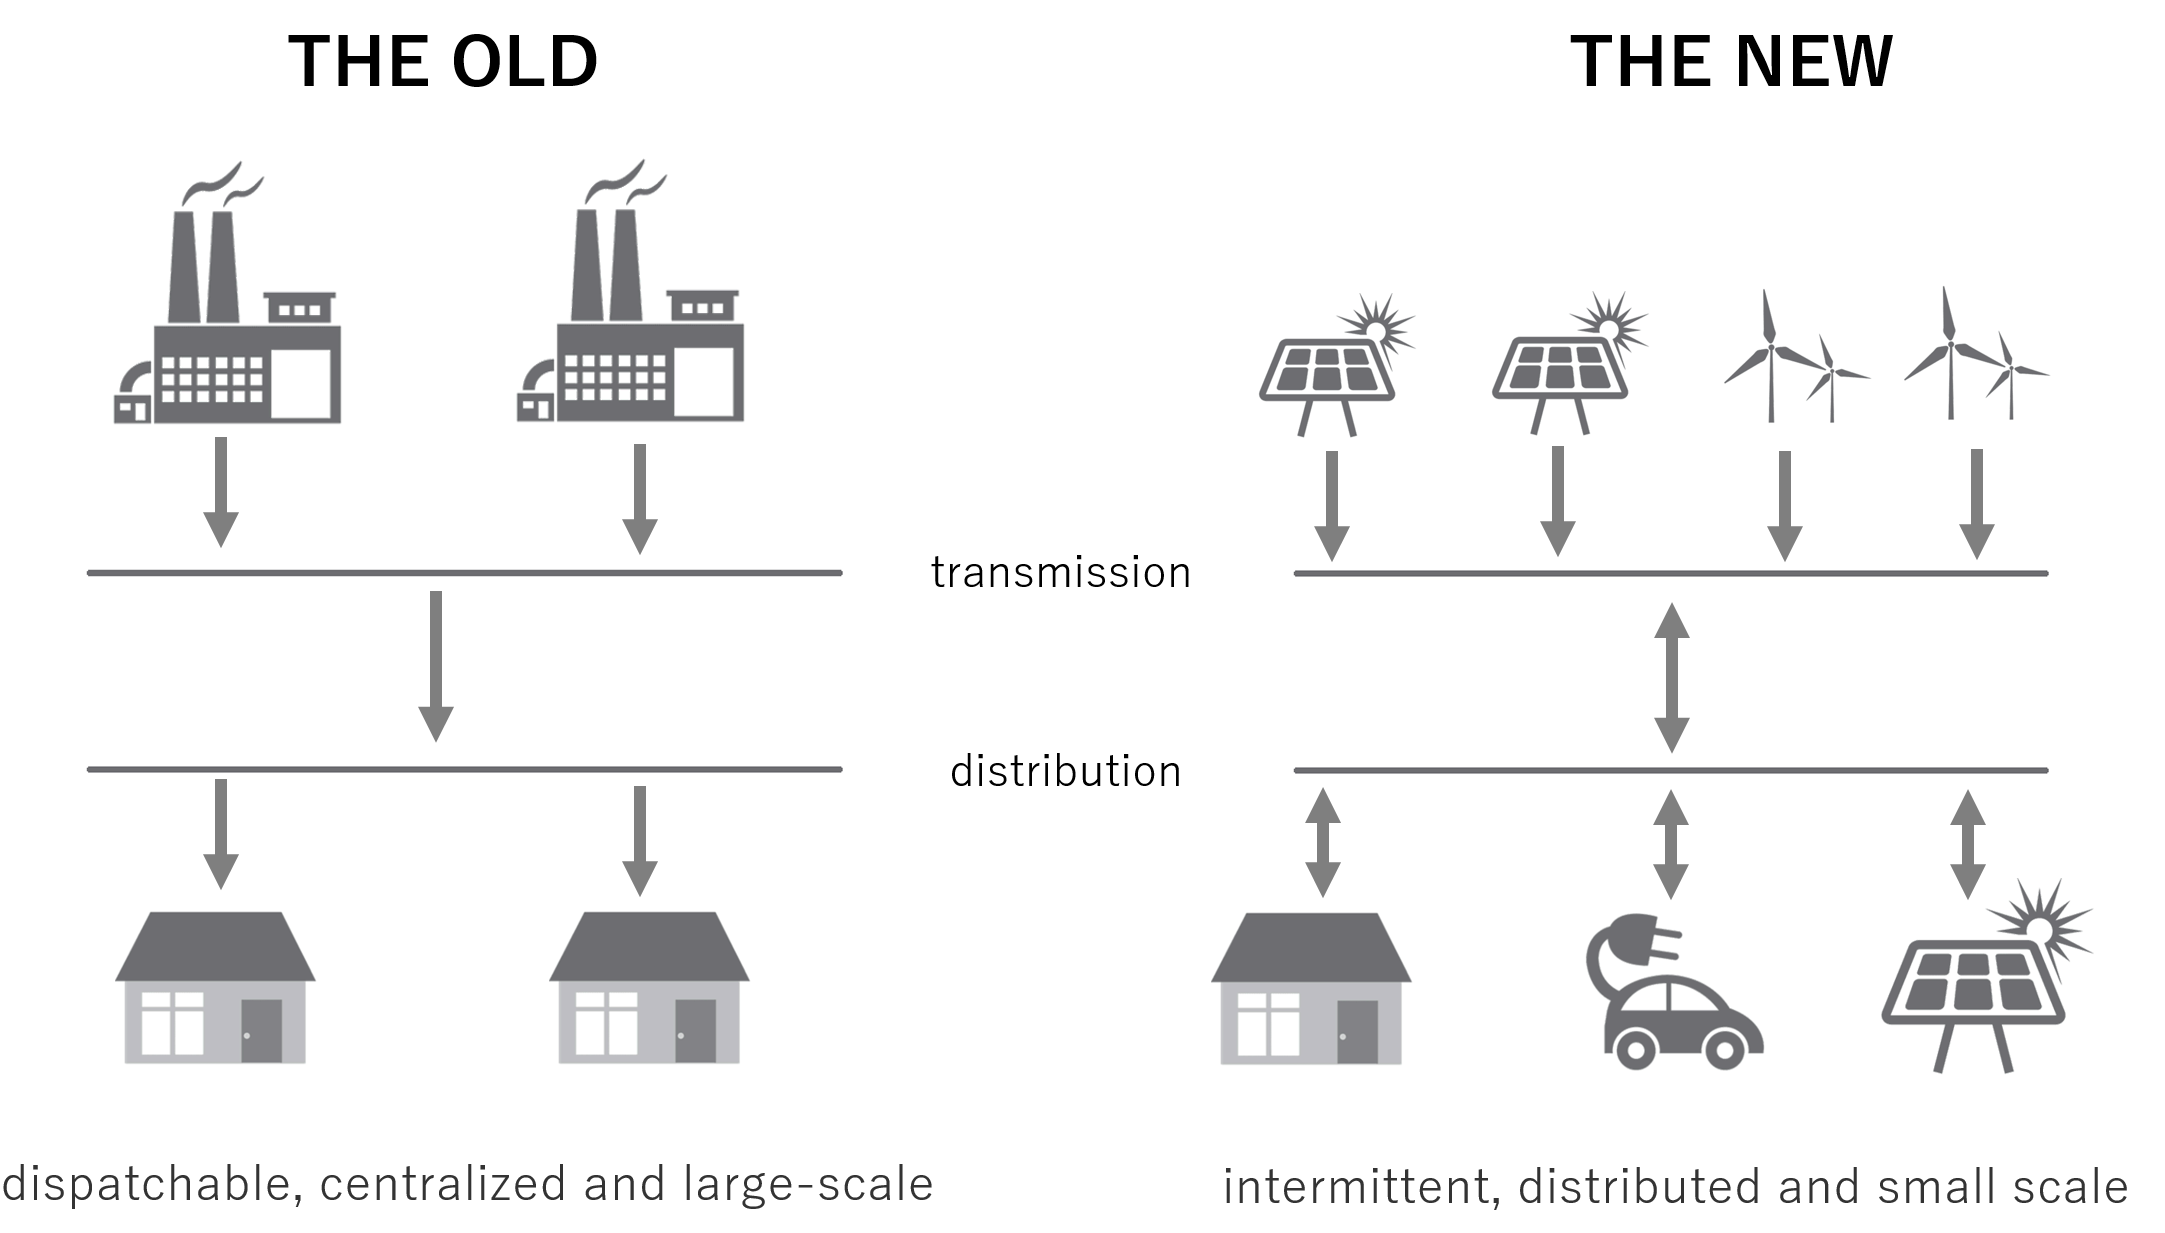 Figure 1 - Our current energy transition is moving us away from dispatchable, centralized and large-scale generation towards intermittent, distributed and small scale generation.